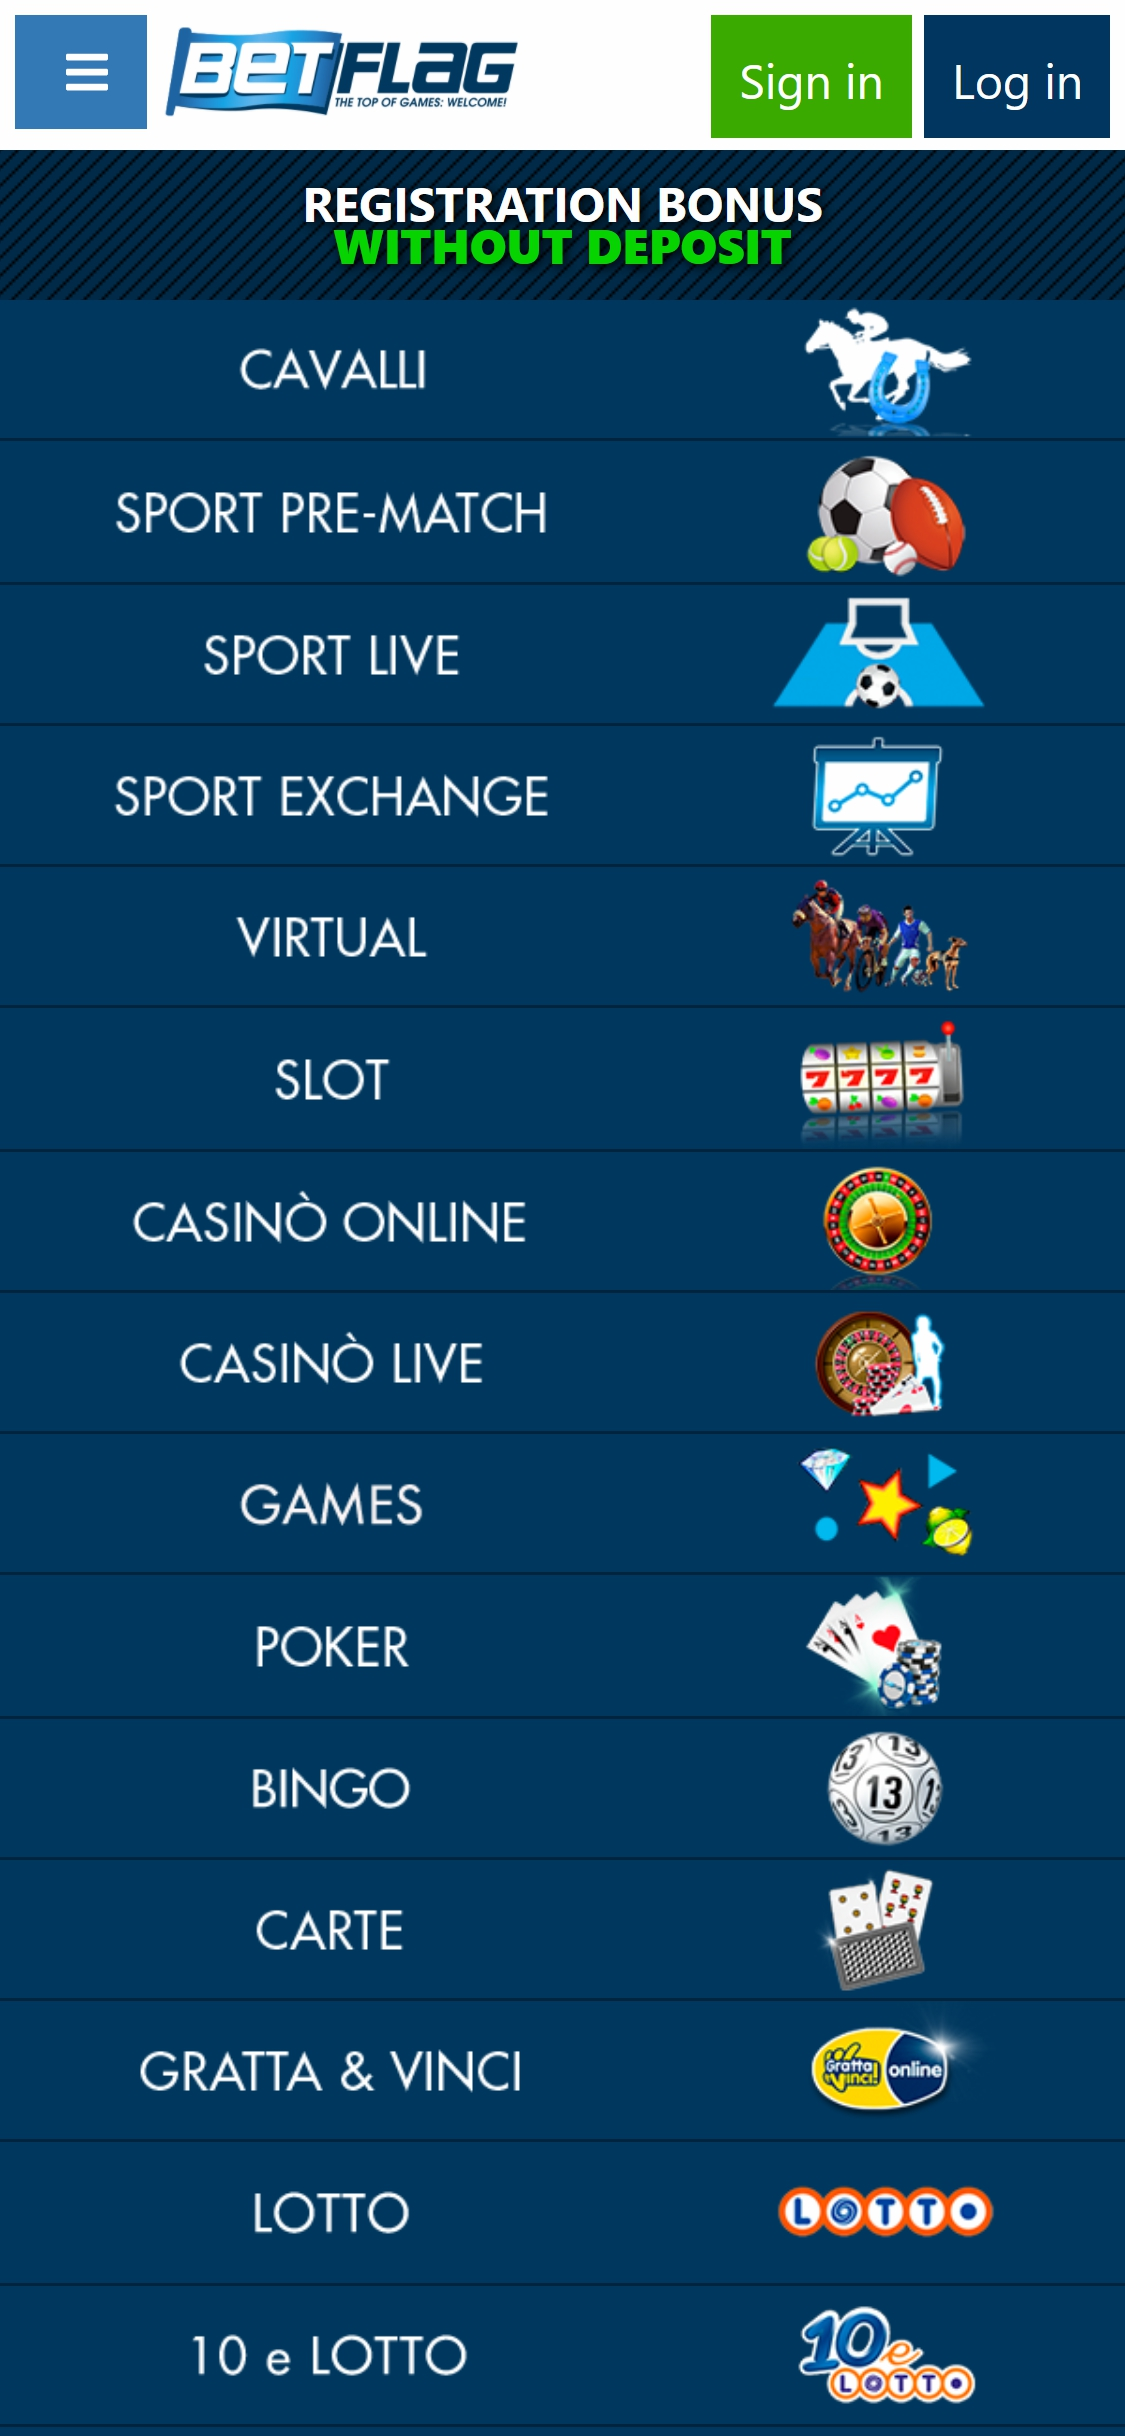 Betflag Casino Review